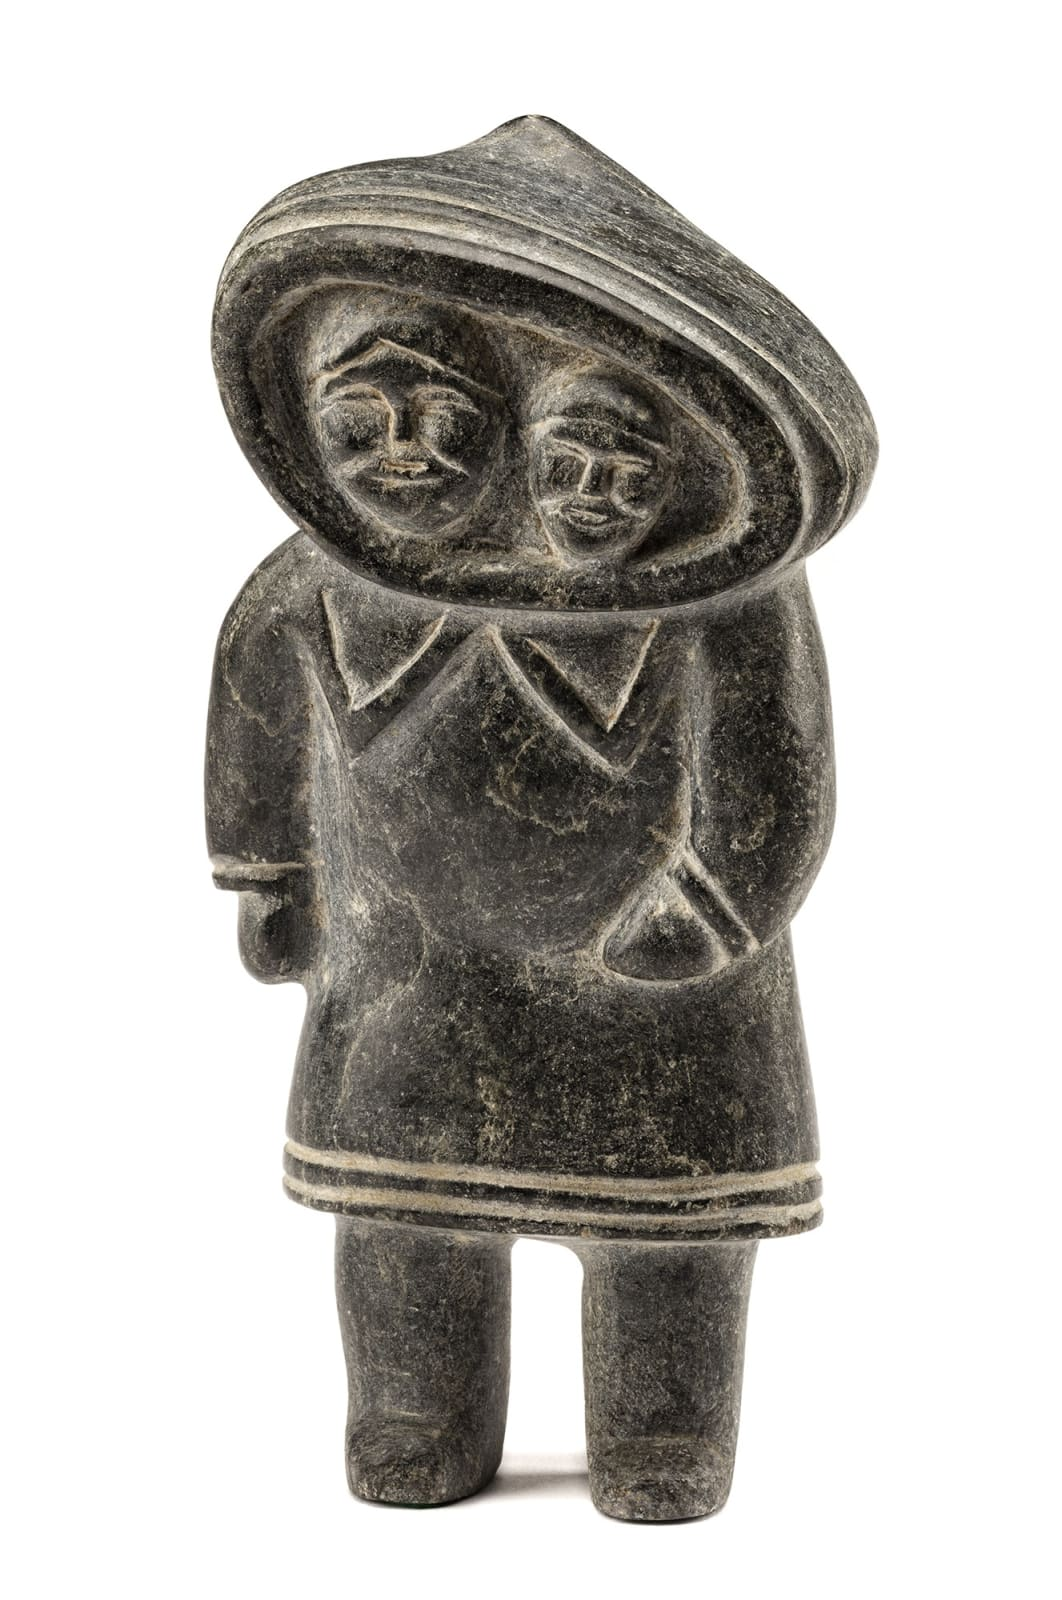 Lot 109 OOTOOVA KOONARK (1930-) f., MITTIMATALIK (POND INLET) Standing Mother with Child in Her Amaut, early 1960s stone, 8 x 4 x 2.5 in (20.3 x 10.2 x 6.3 cm) Estimate: $1,800⁠⁠⁠— $2,800 price realized: $2,640